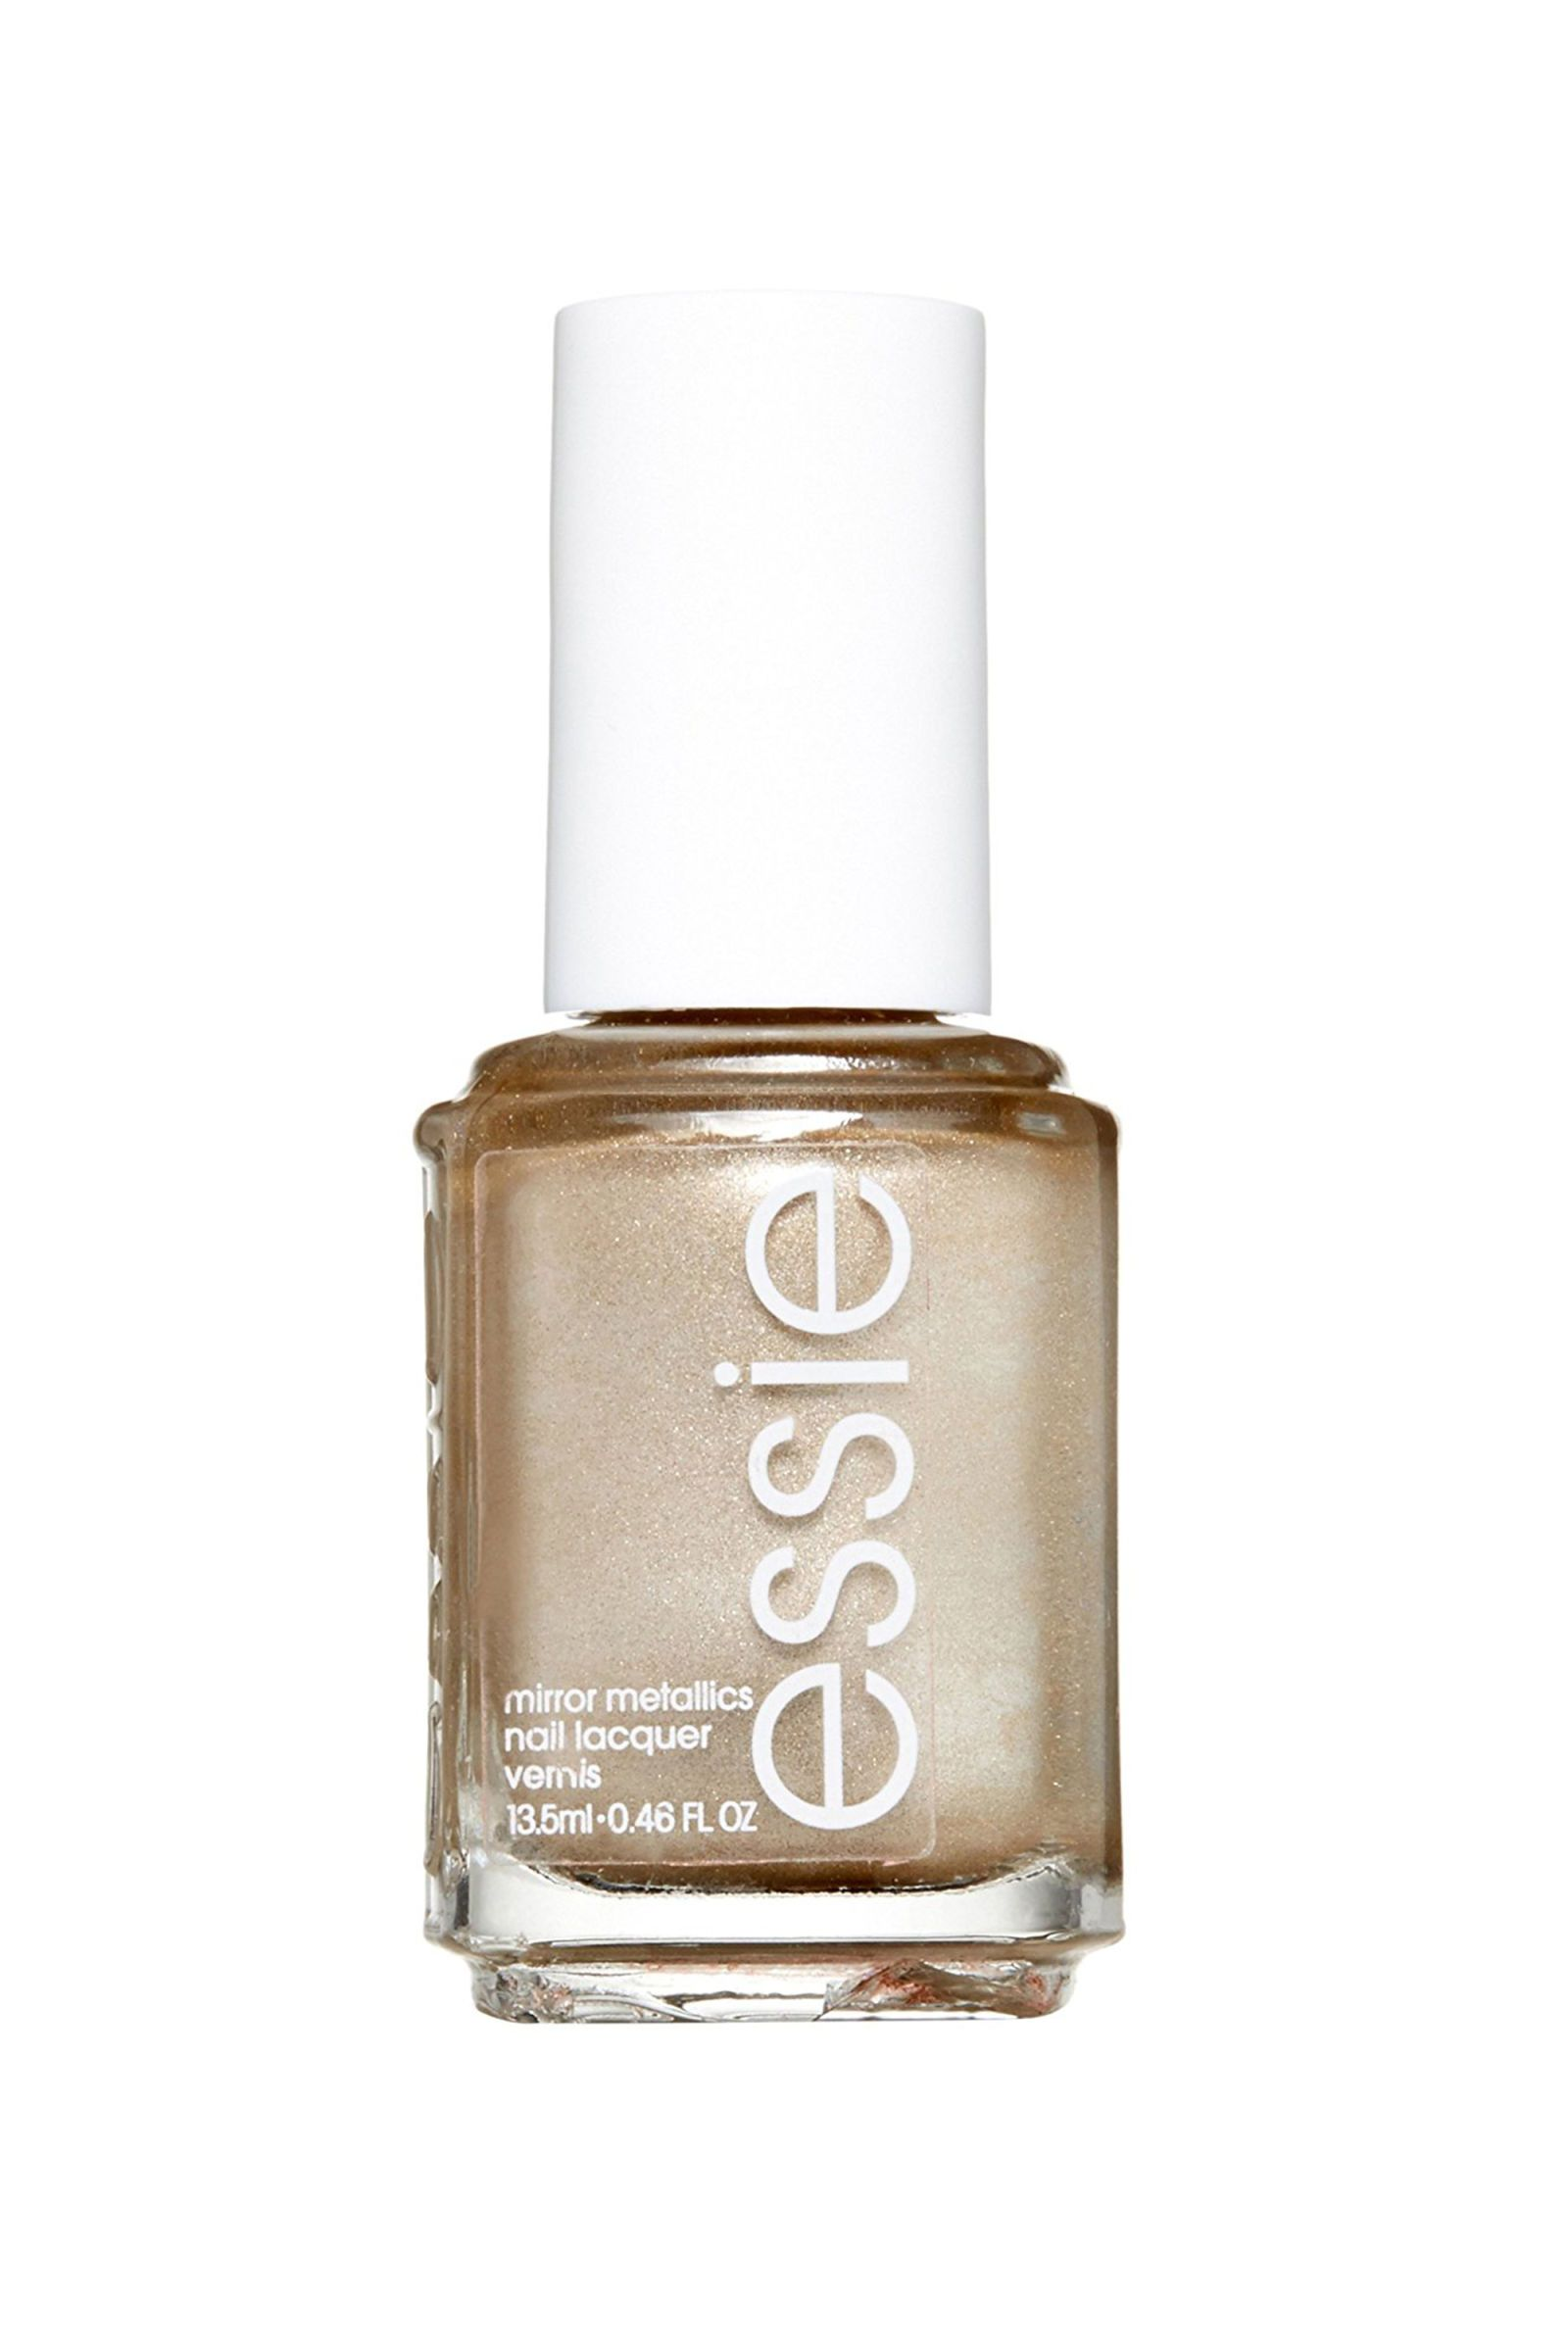 6 Metallic Nail Polishes Tested By ELLE Editors | Essie nail colors ...